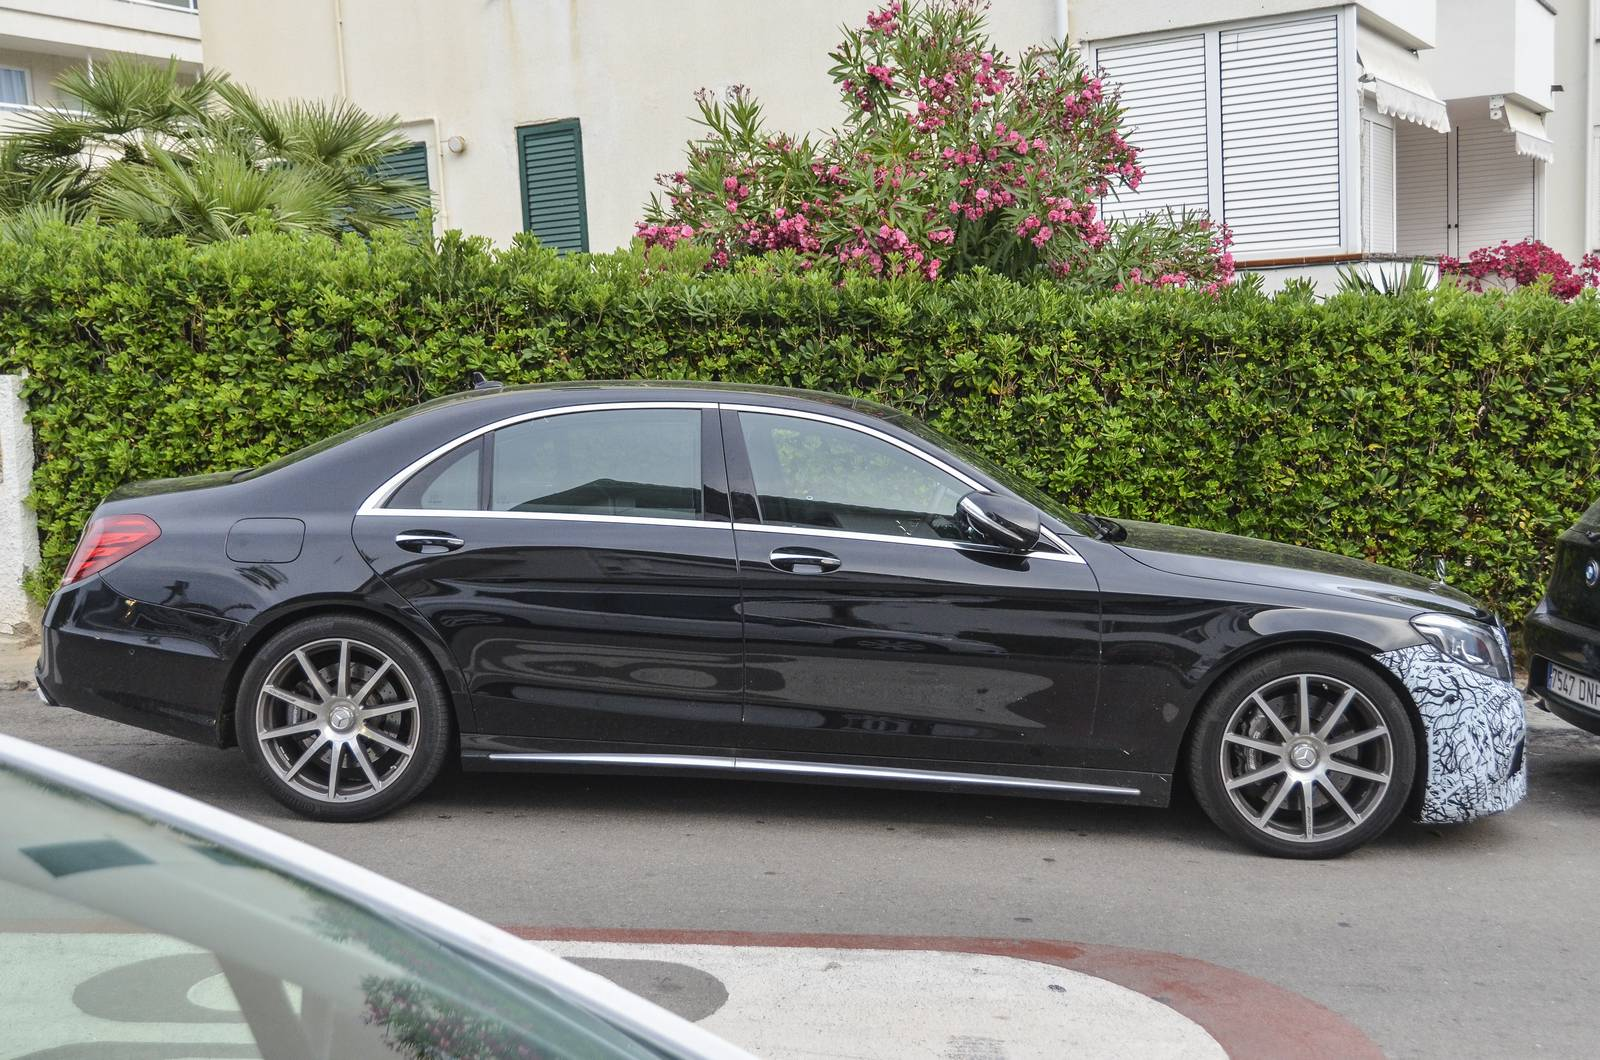 mercedes amg s63 facelift spy shots 600hp base power and more gtspirit. Black Bedroom Furniture Sets. Home Design Ideas